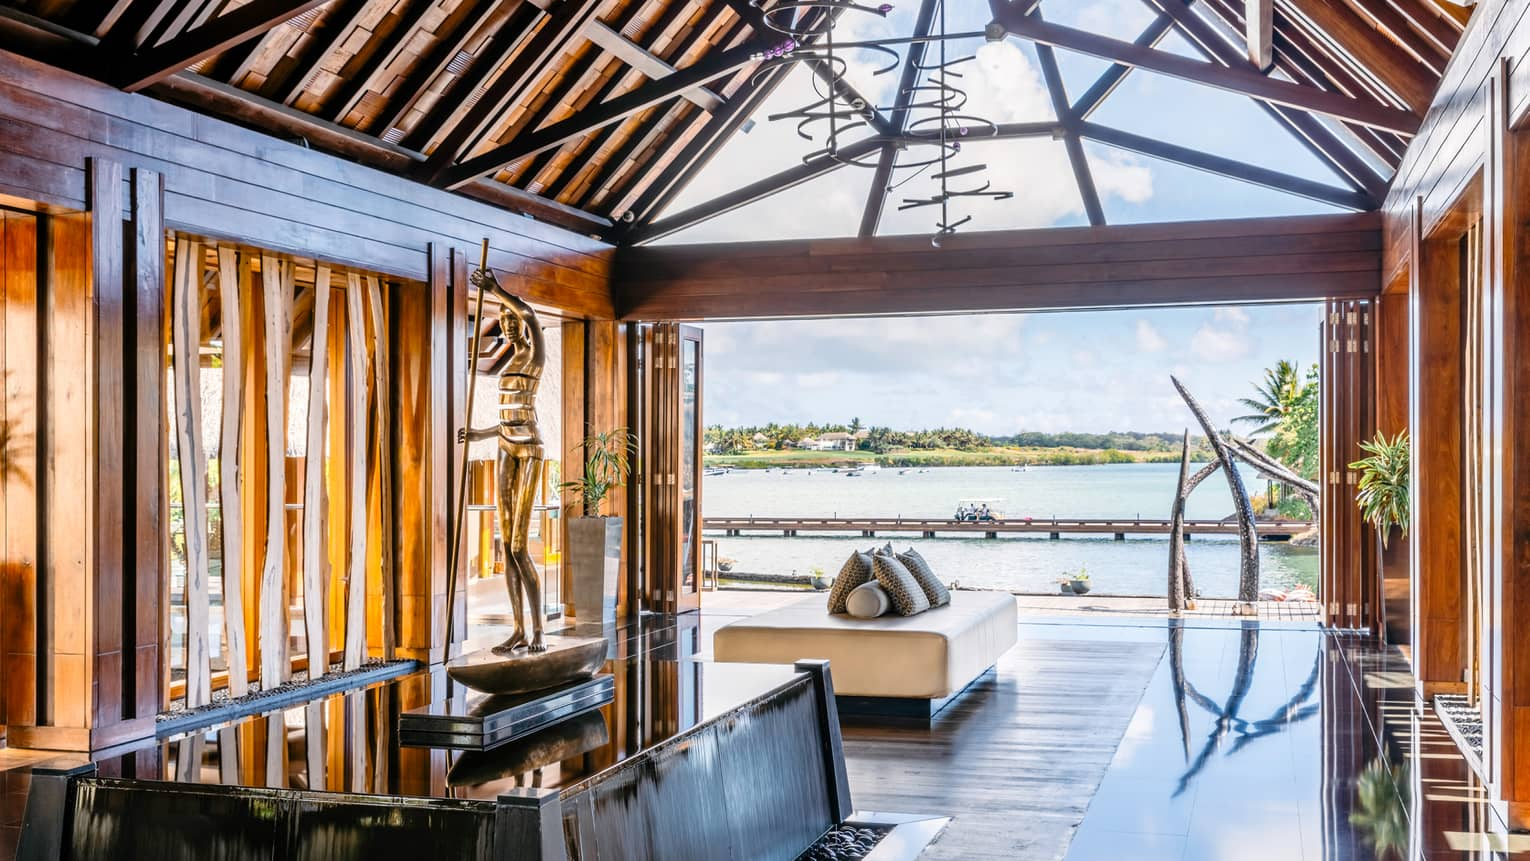 Resort lobby with vaulted wood ceiling and view over barachois and Indian Ocean lagoon